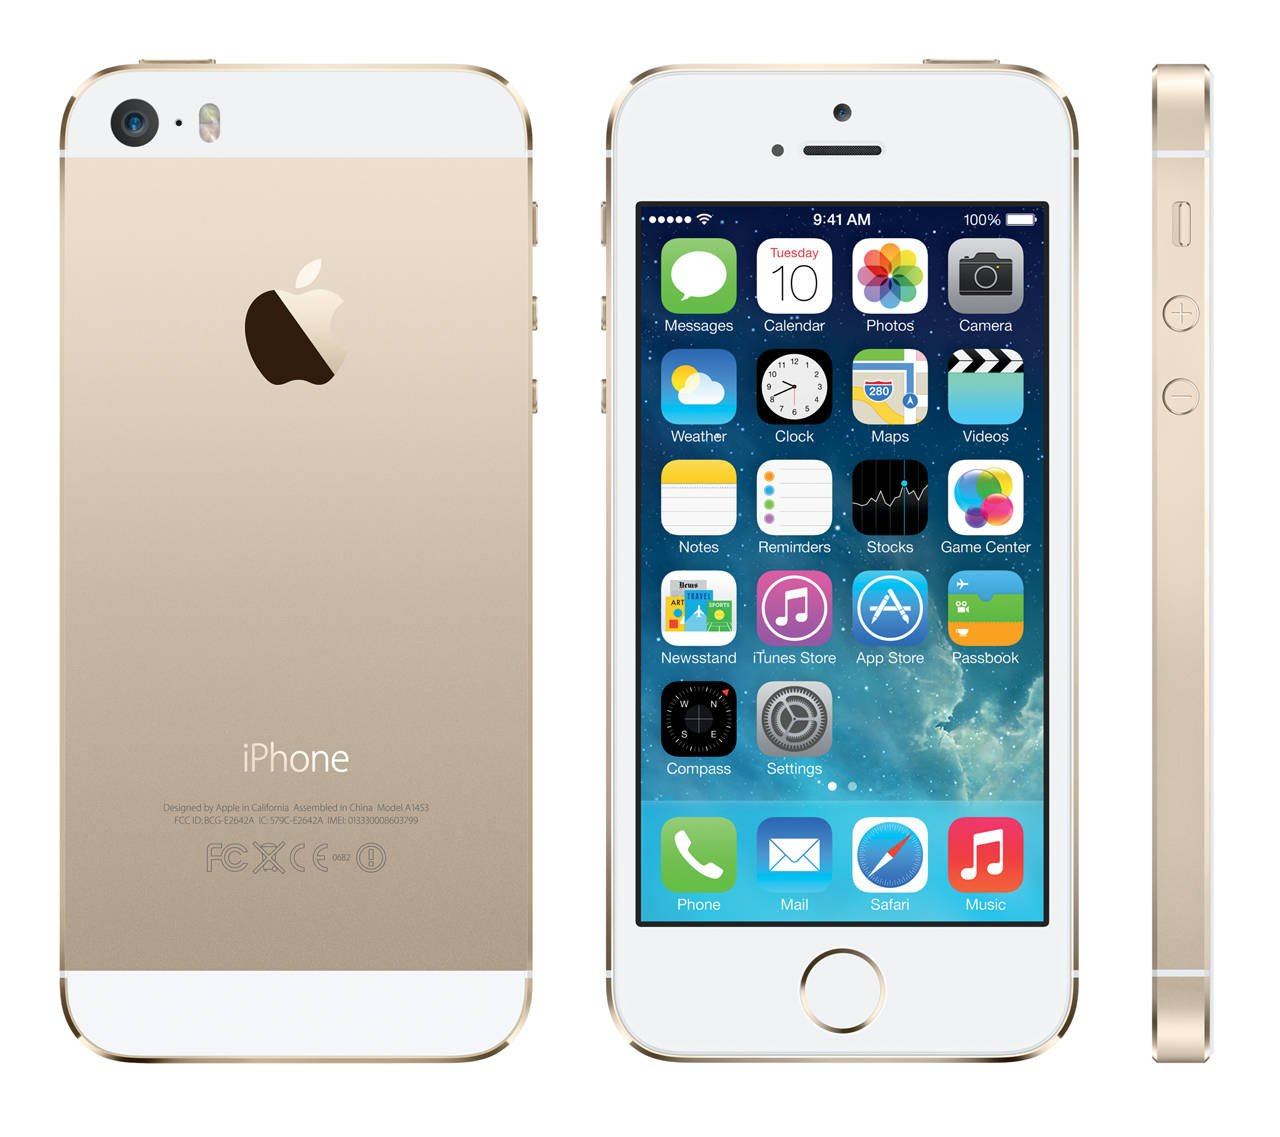 IPhone moreover How To Insert A SIM Card In Your Apple IPhone 6s id80050 besides 400580122536 additionally Apple Unveils New Iphone 5c Price Article 1 furthermore 12238 Apple A7 Inside. on inside iphone 5s chip